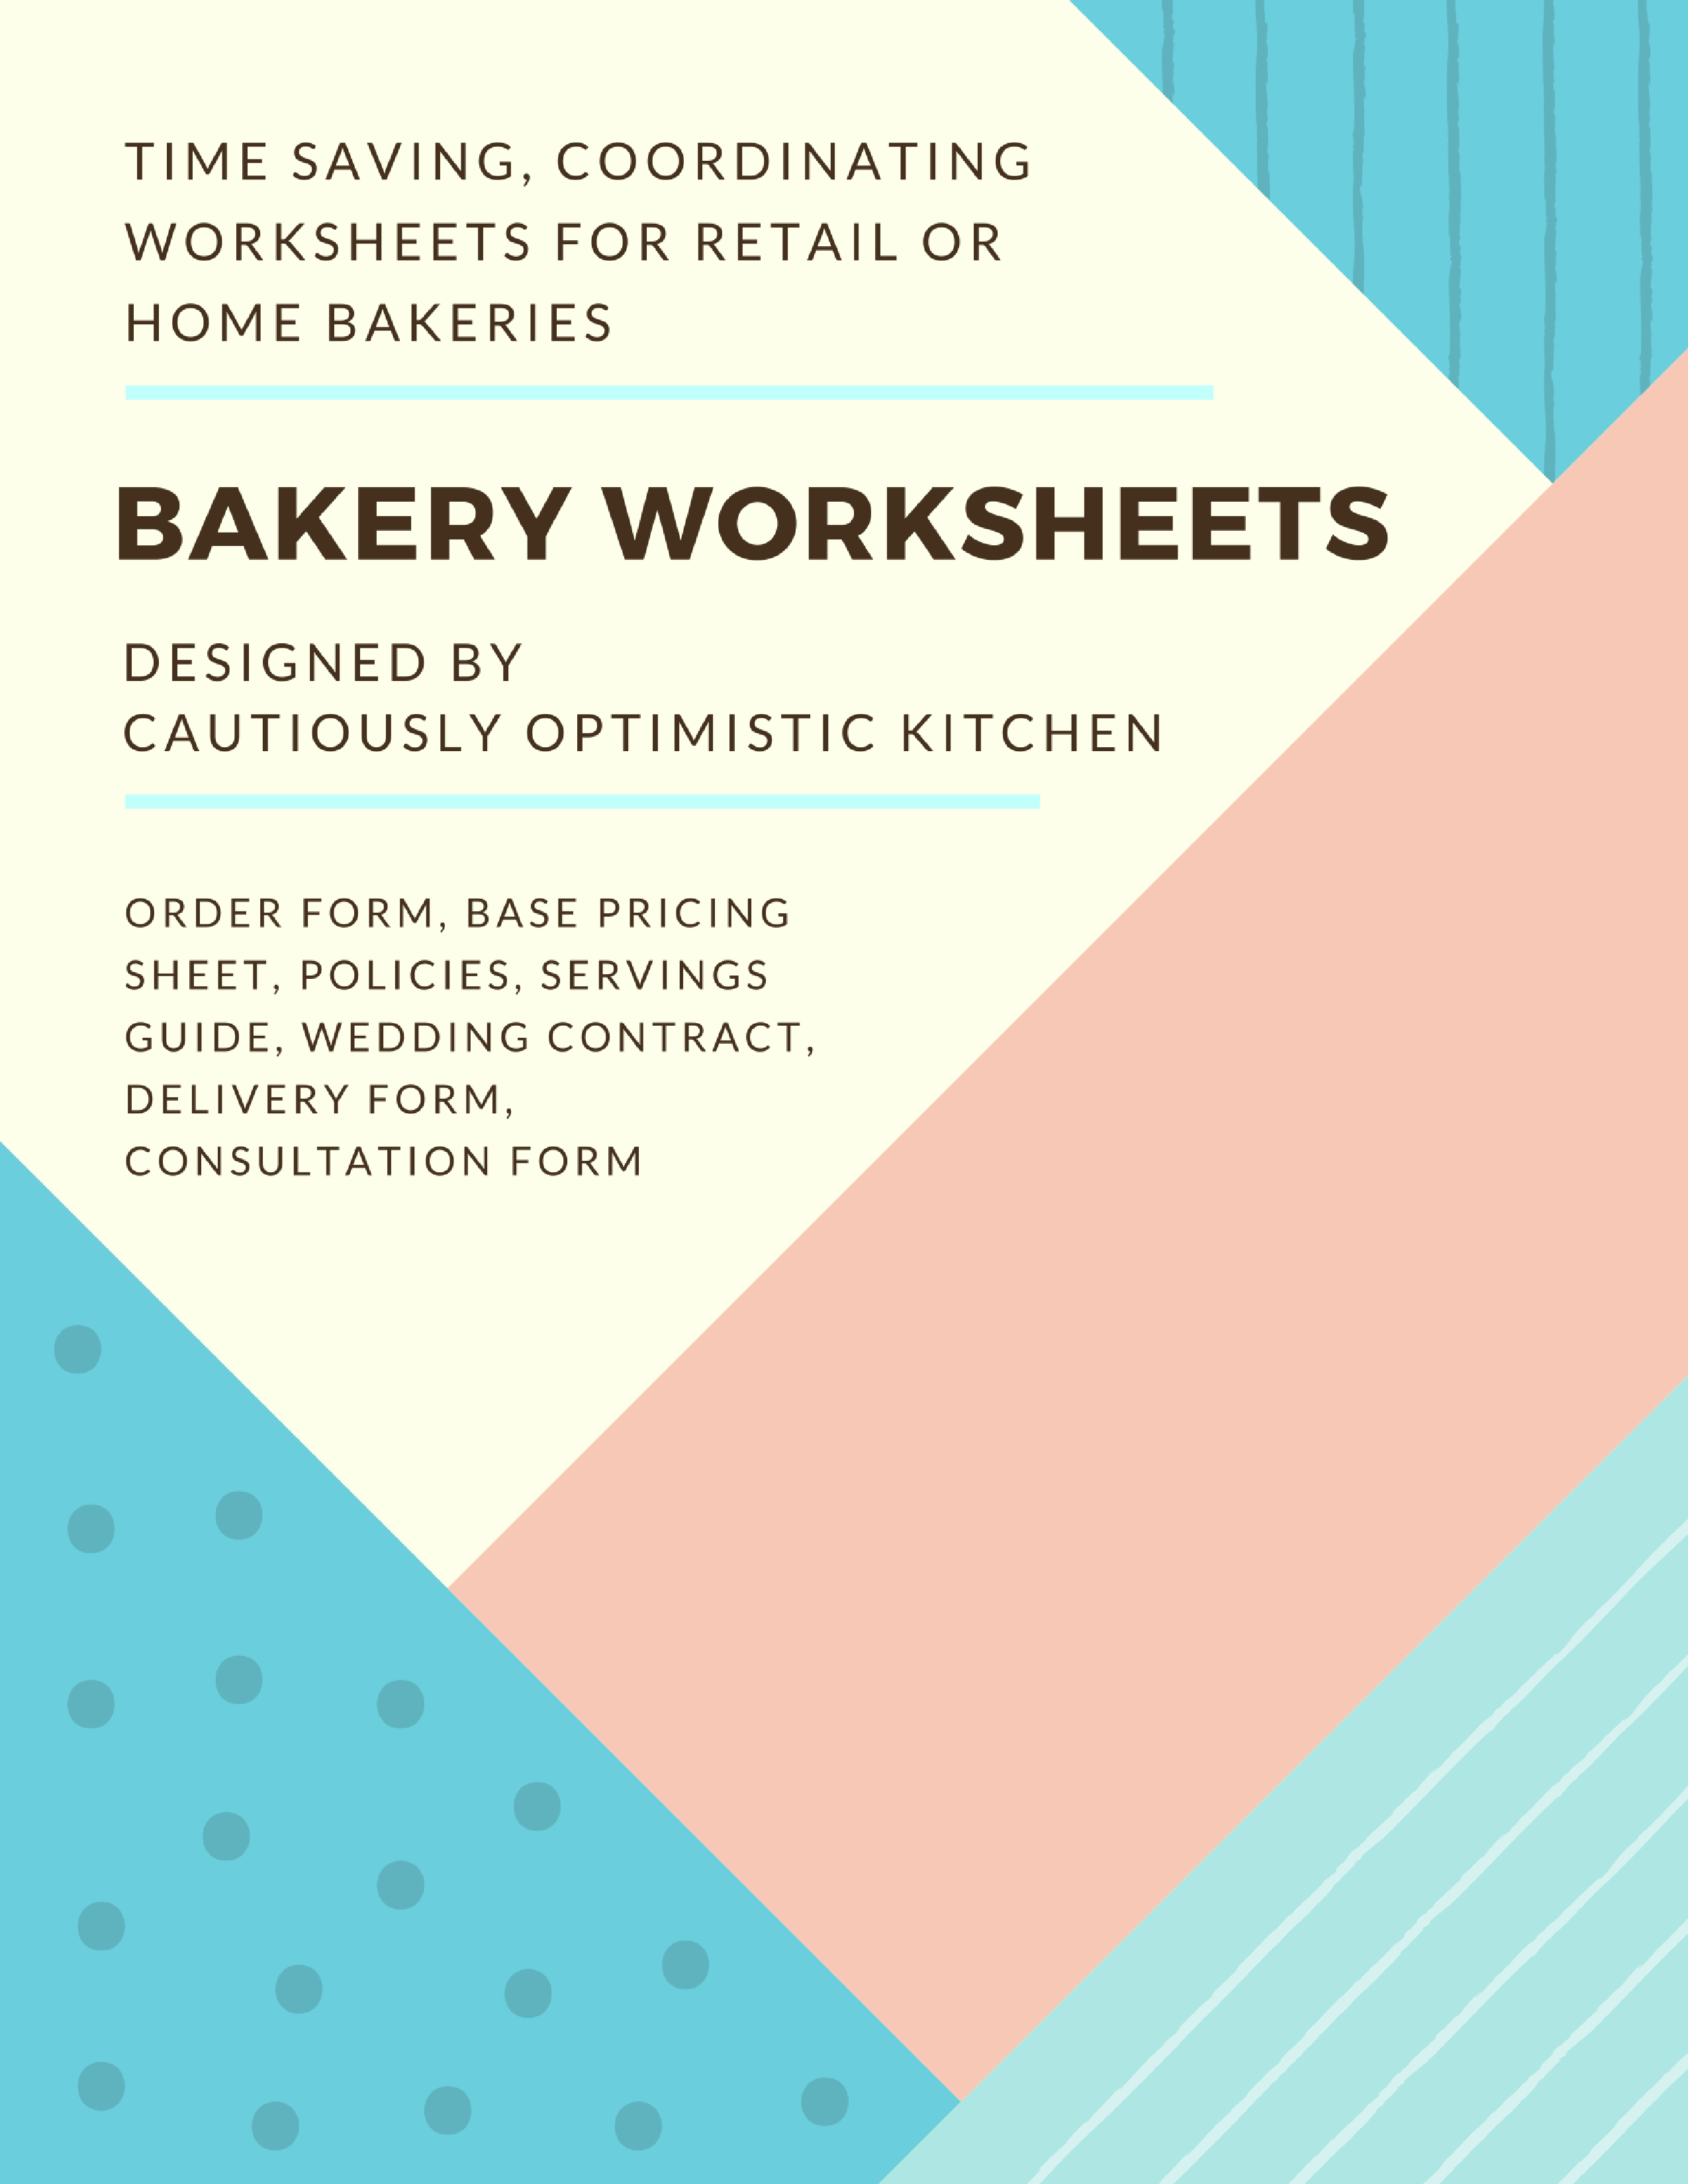 Free Bakery Worksheets Order Forms Policies Servings Guides Amp More